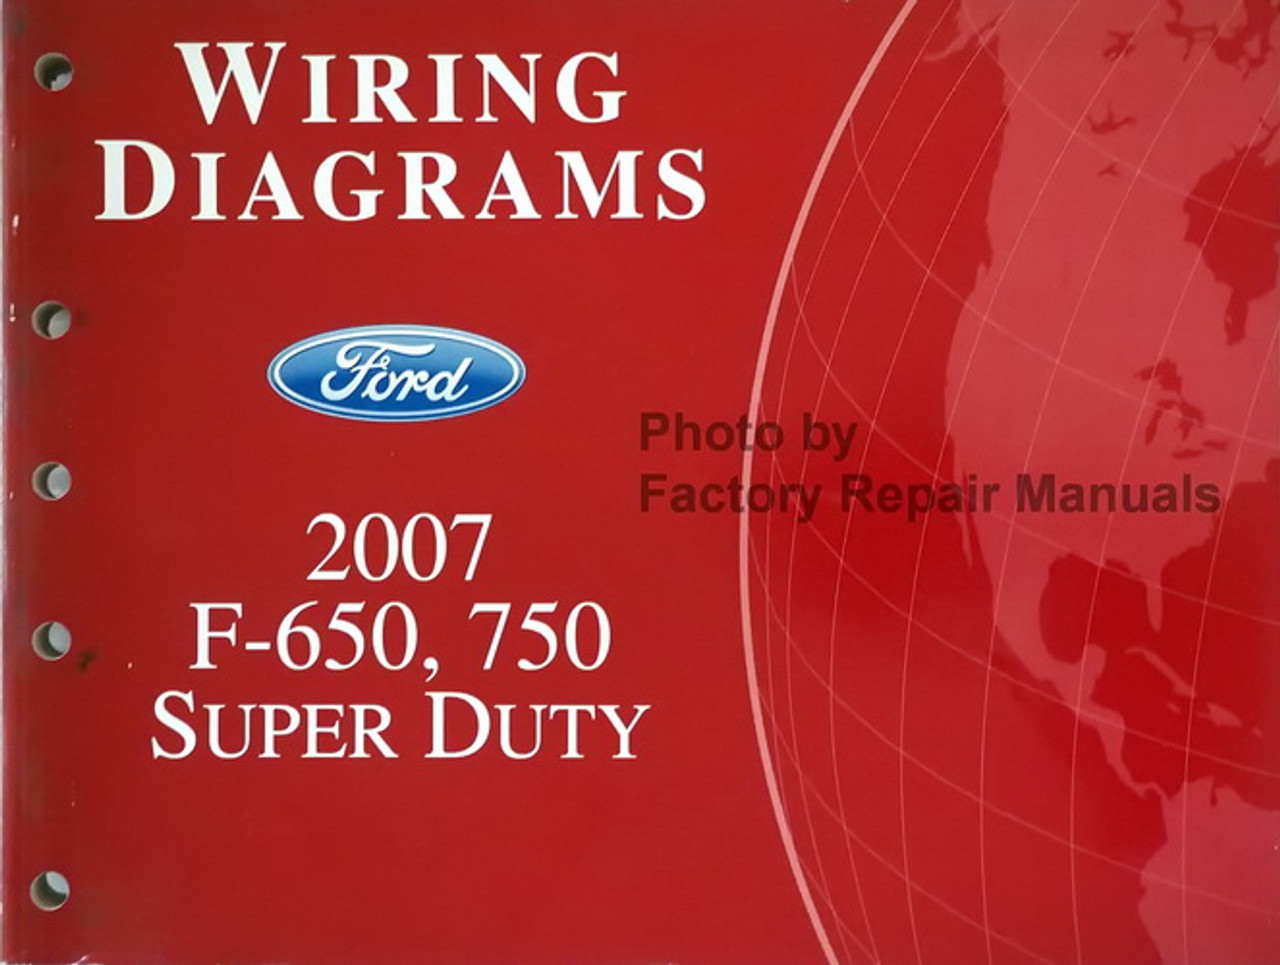 2007 Ford F650 F750 Truck Electrical Wiring Diagrams Manual Original -  Factory Repair Manuals | Ford F 750 Wiring Diagram |  | Factory Repair Manuals